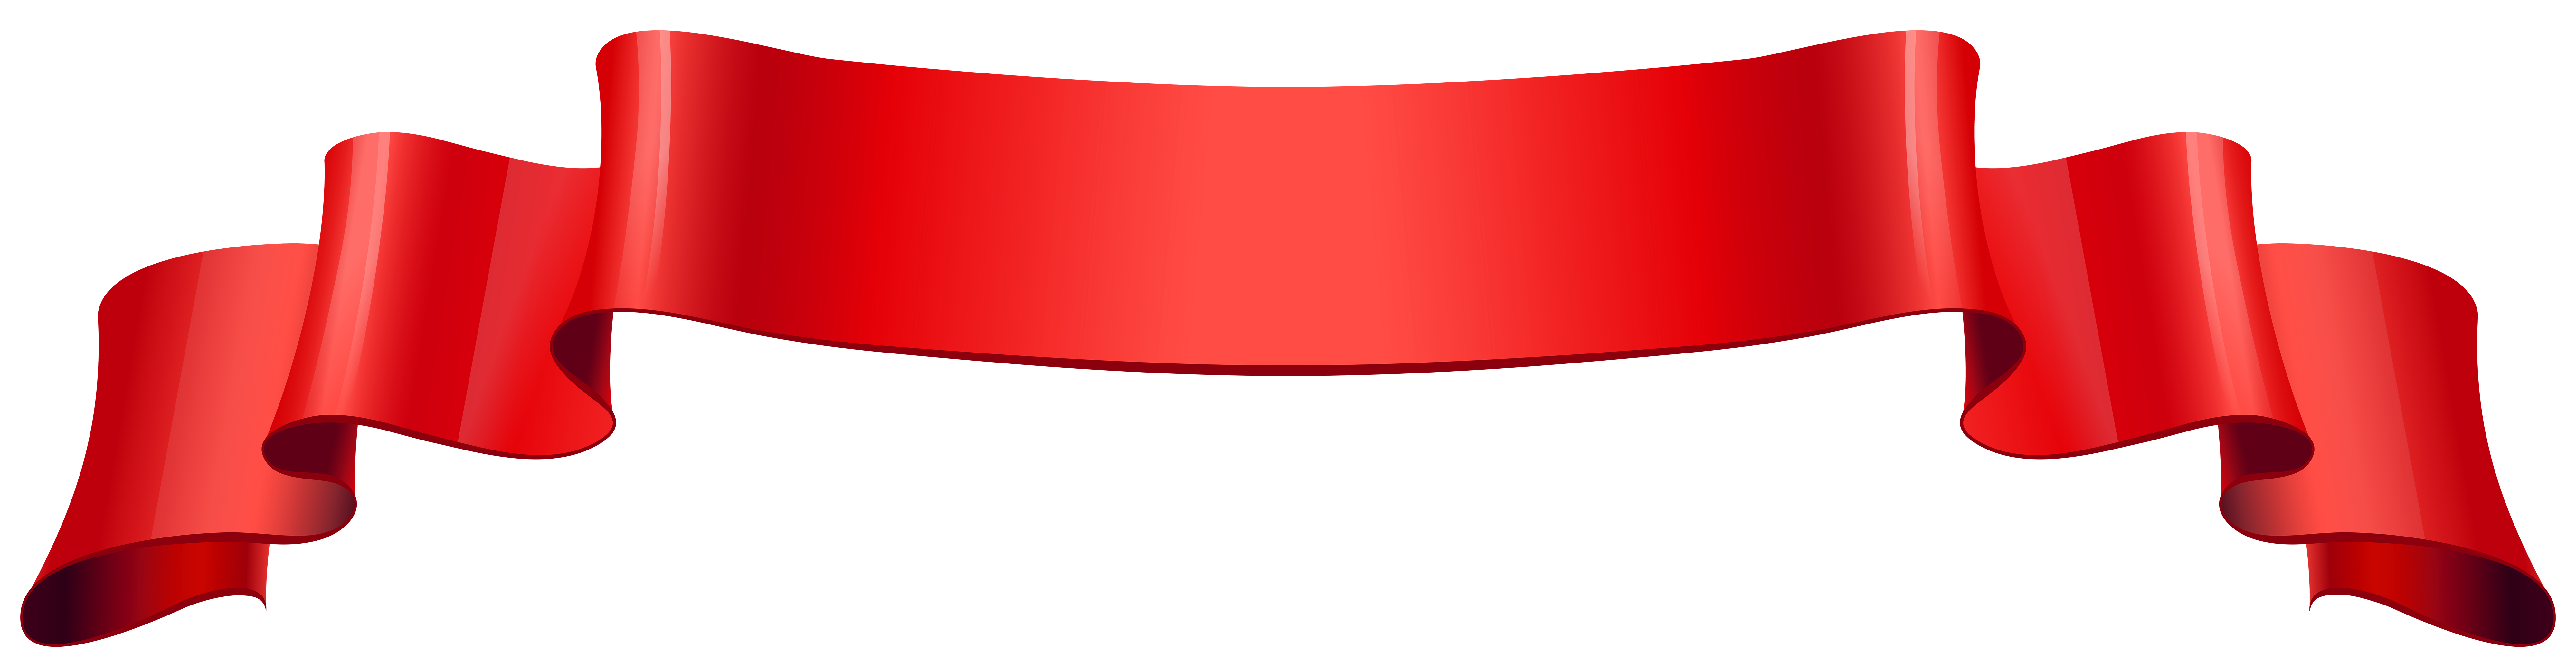 Png red banner. Transparent image gallery yopriceville